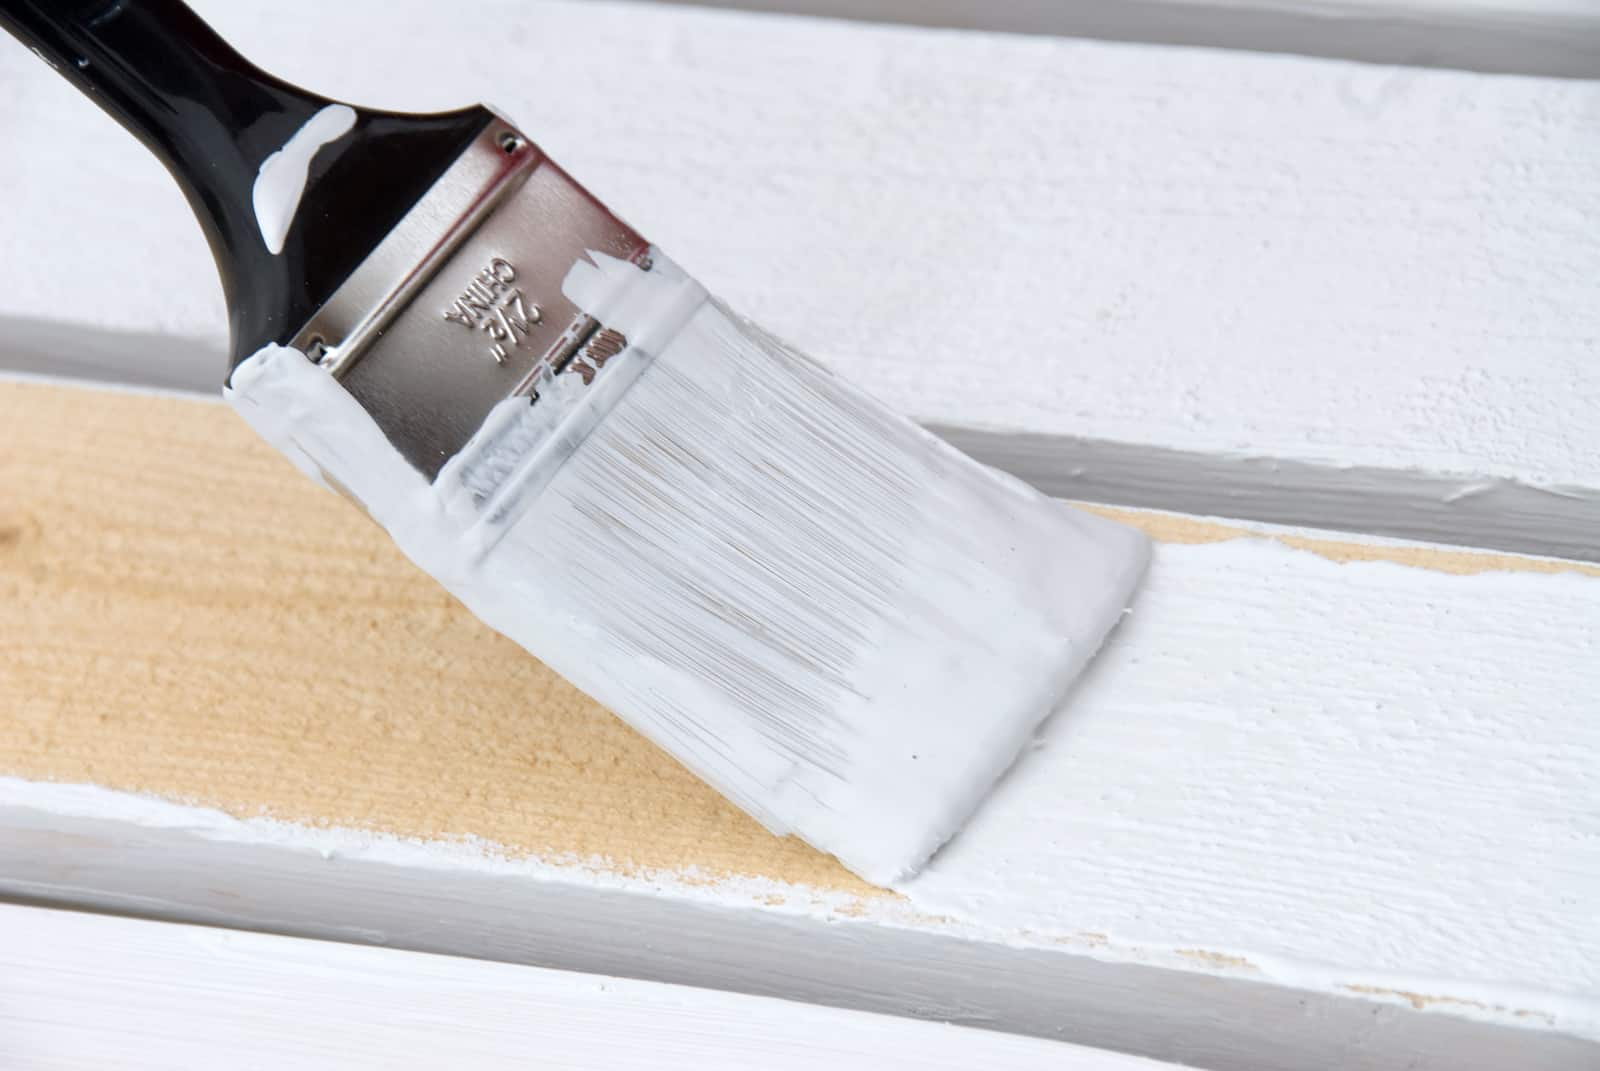 Top 5 Best Paint Primers in 2021